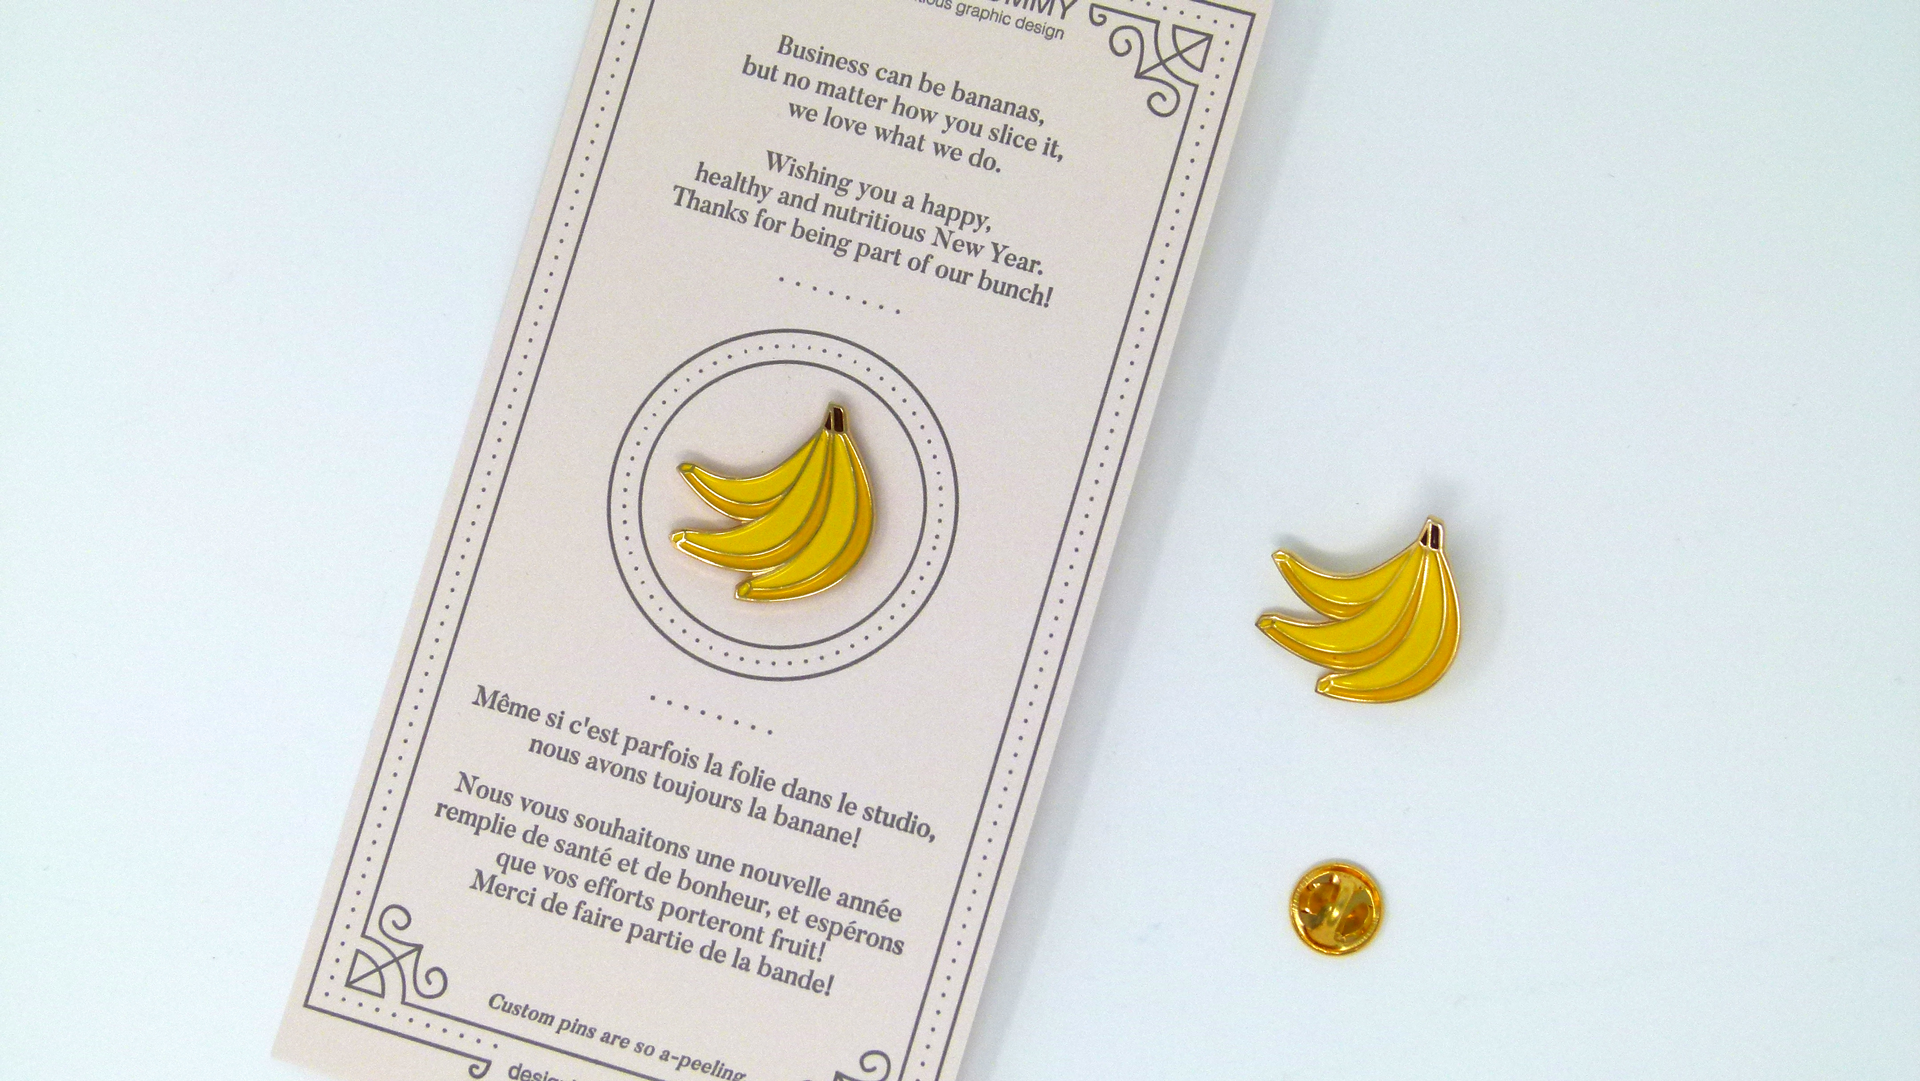 Design is Yummy 'Part of Our Bunch' letterpress card and pin - PaperSpecs